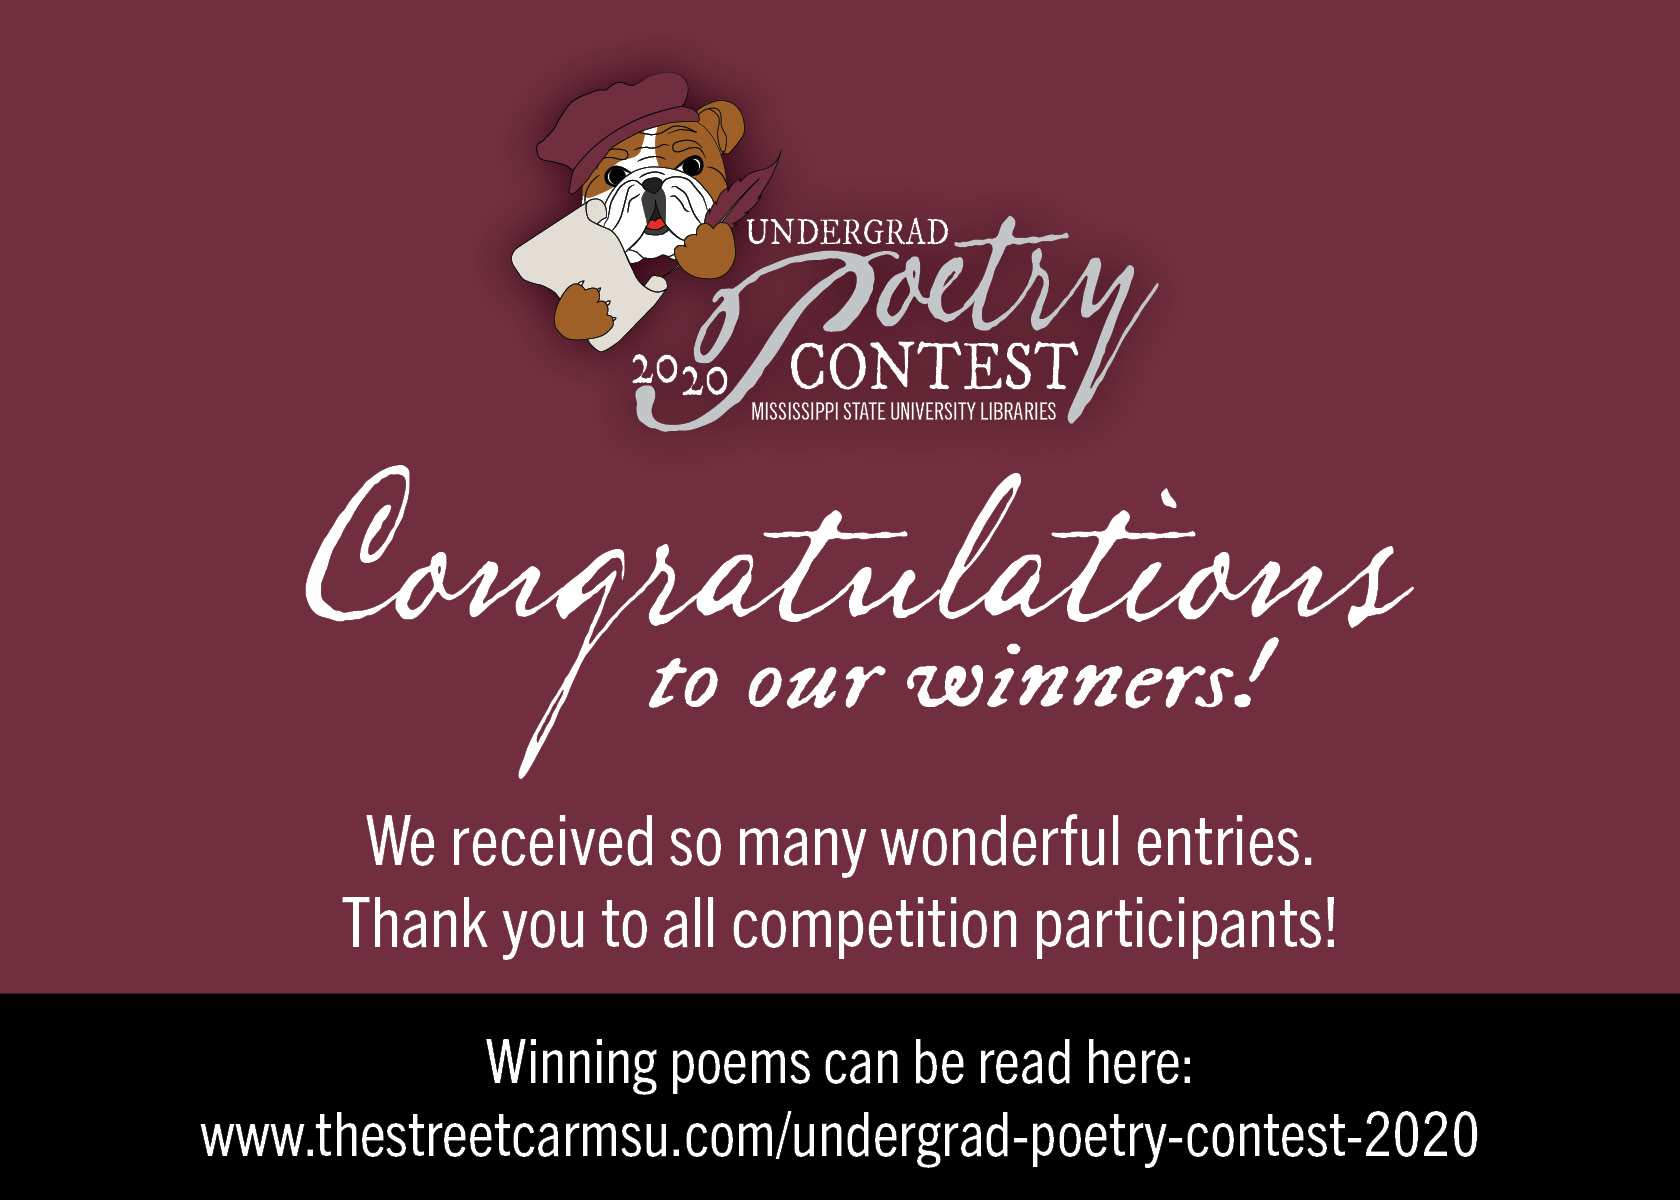 MSU Undergrad Poetry Contest thank you